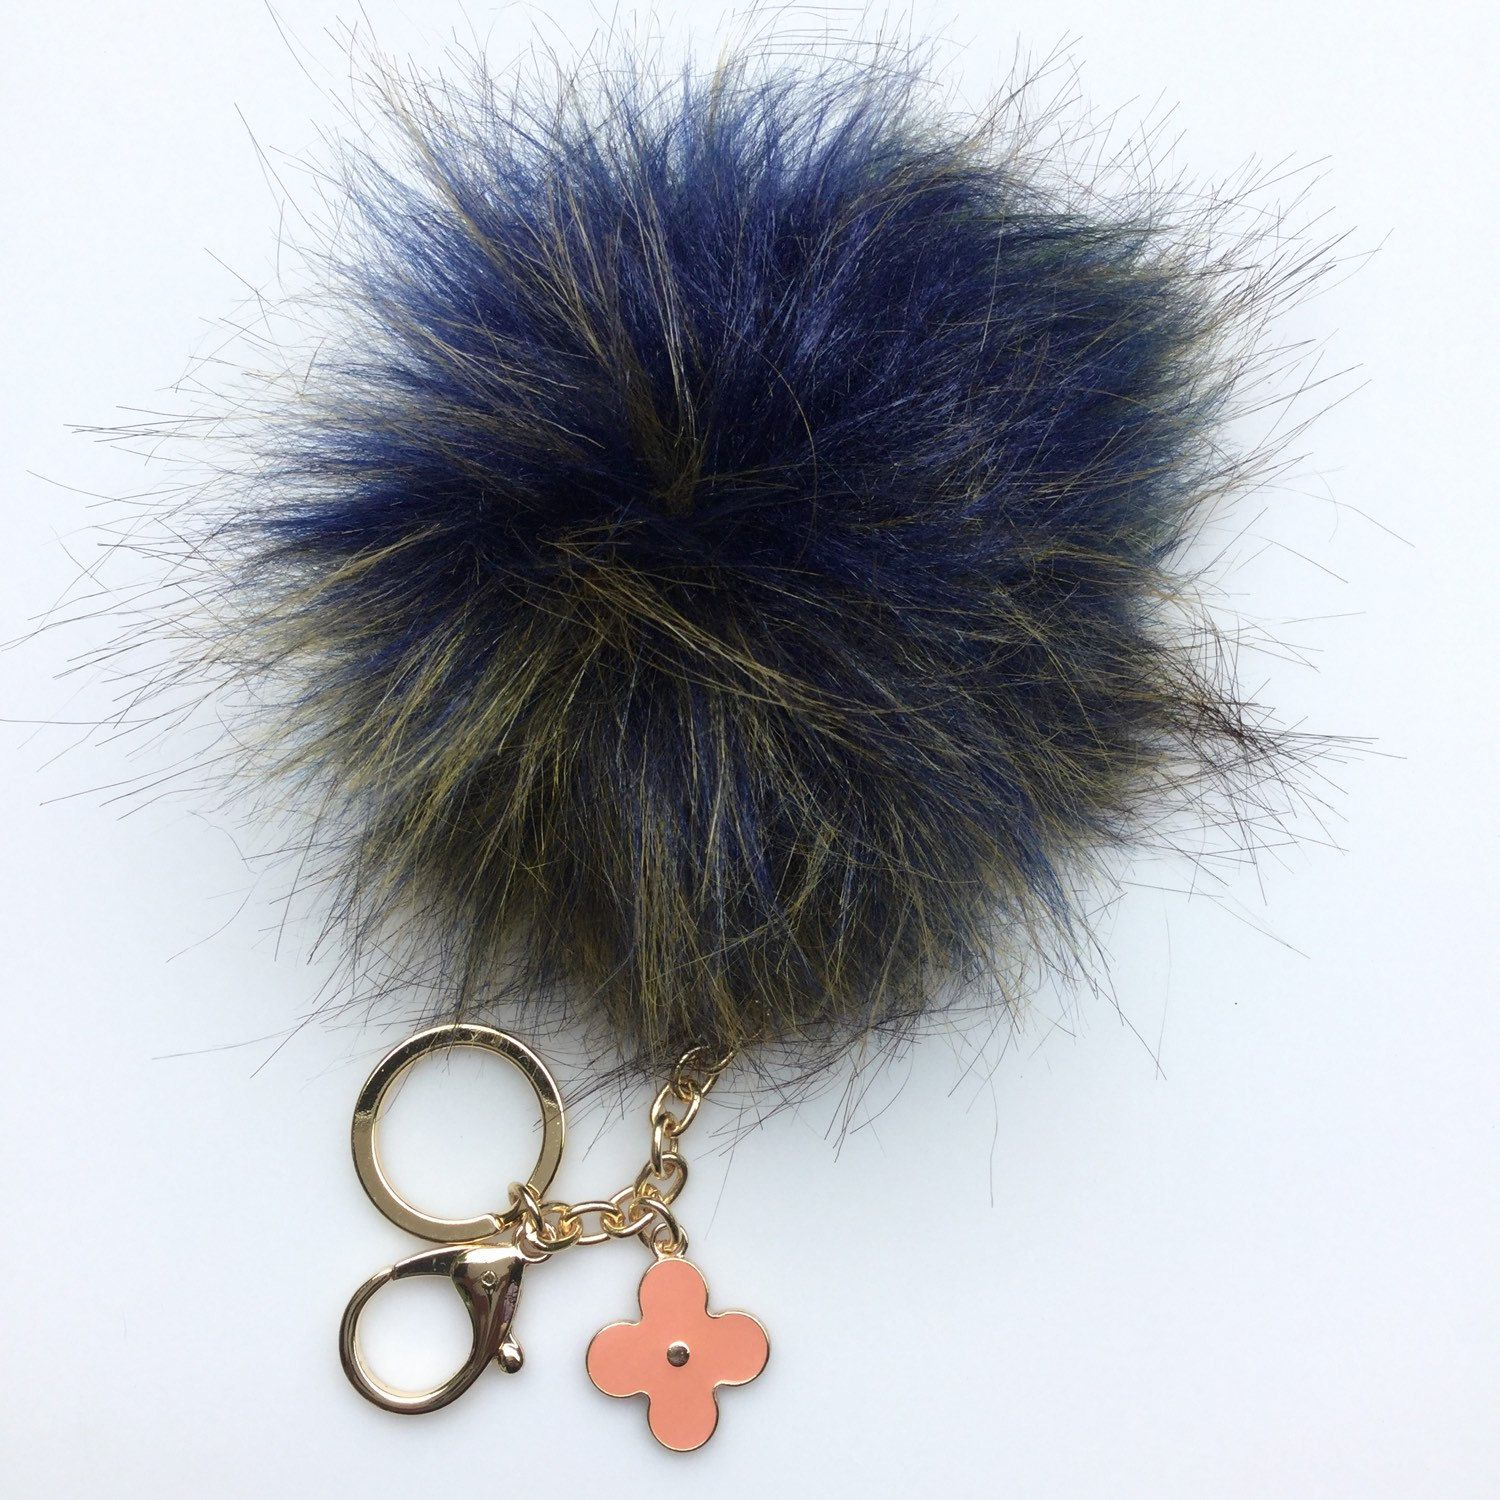 New Faux Fur #pompoms available now in our store @yogastudio55 on #etsy #furpompomkeychain #fauxfurpompom #fauxfur